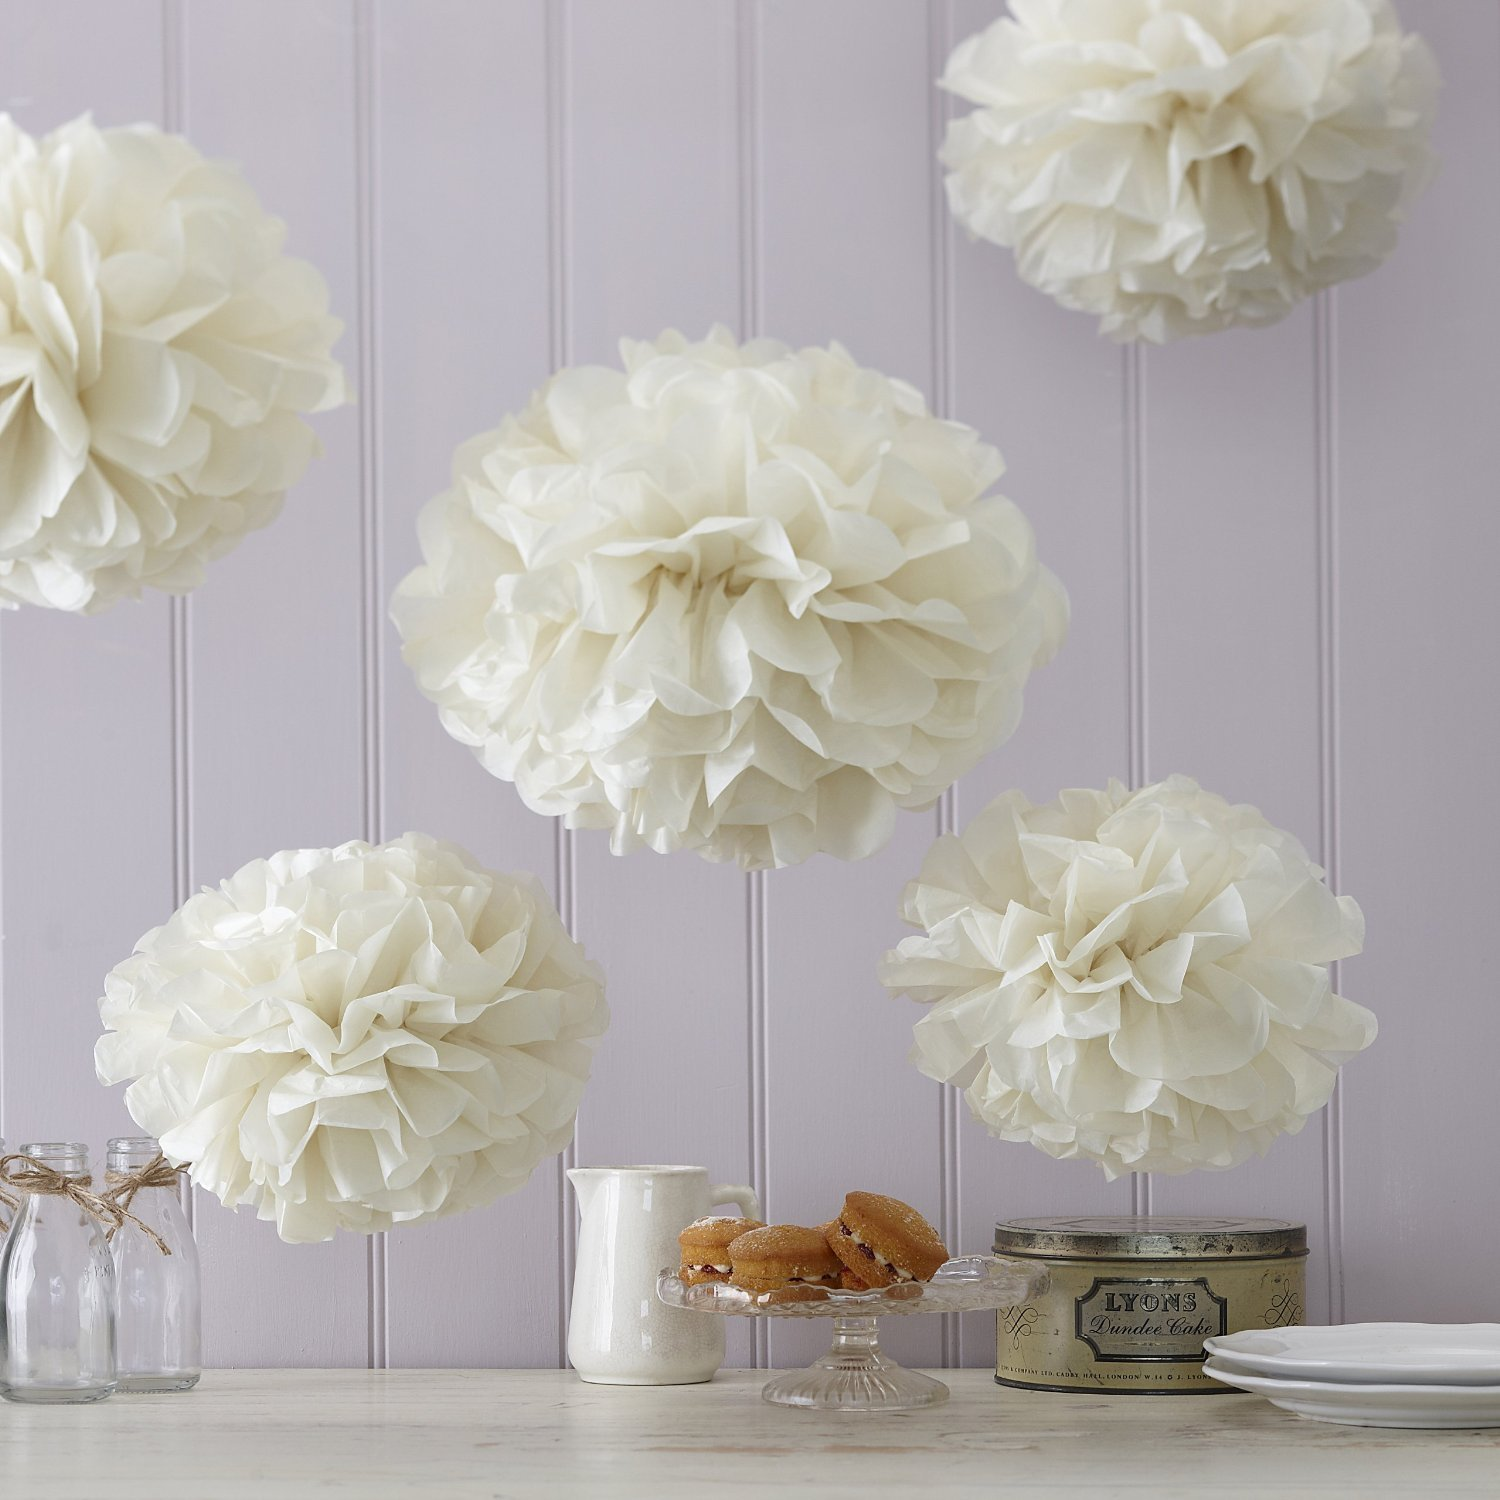 Vintage Lace SRI01861 Sorive Ivory Tissue Paper Pom Poms 5 Pack Wedding /& Party Decorations